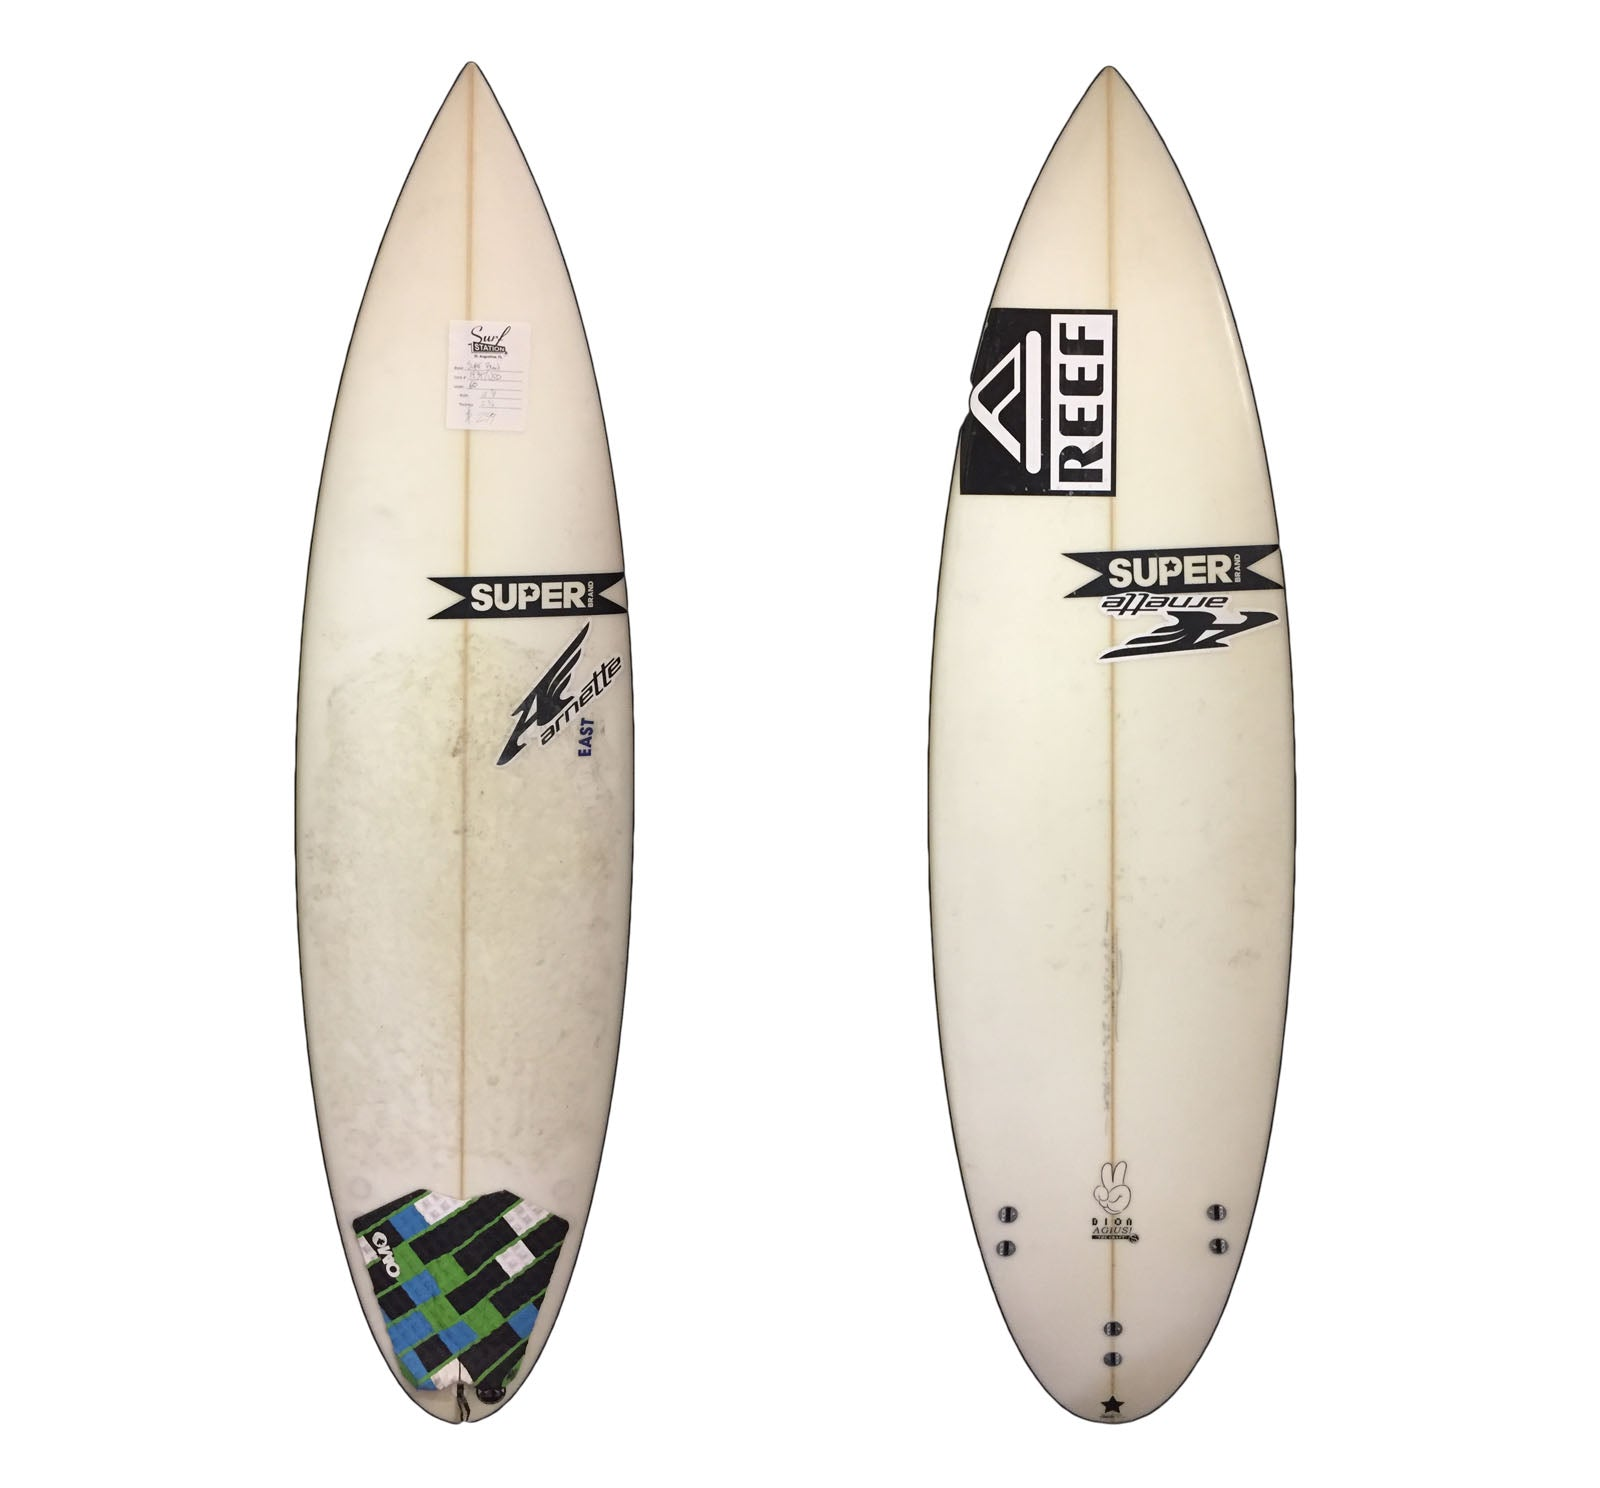 Super Brand The Craft 6'0 Used Surfboard